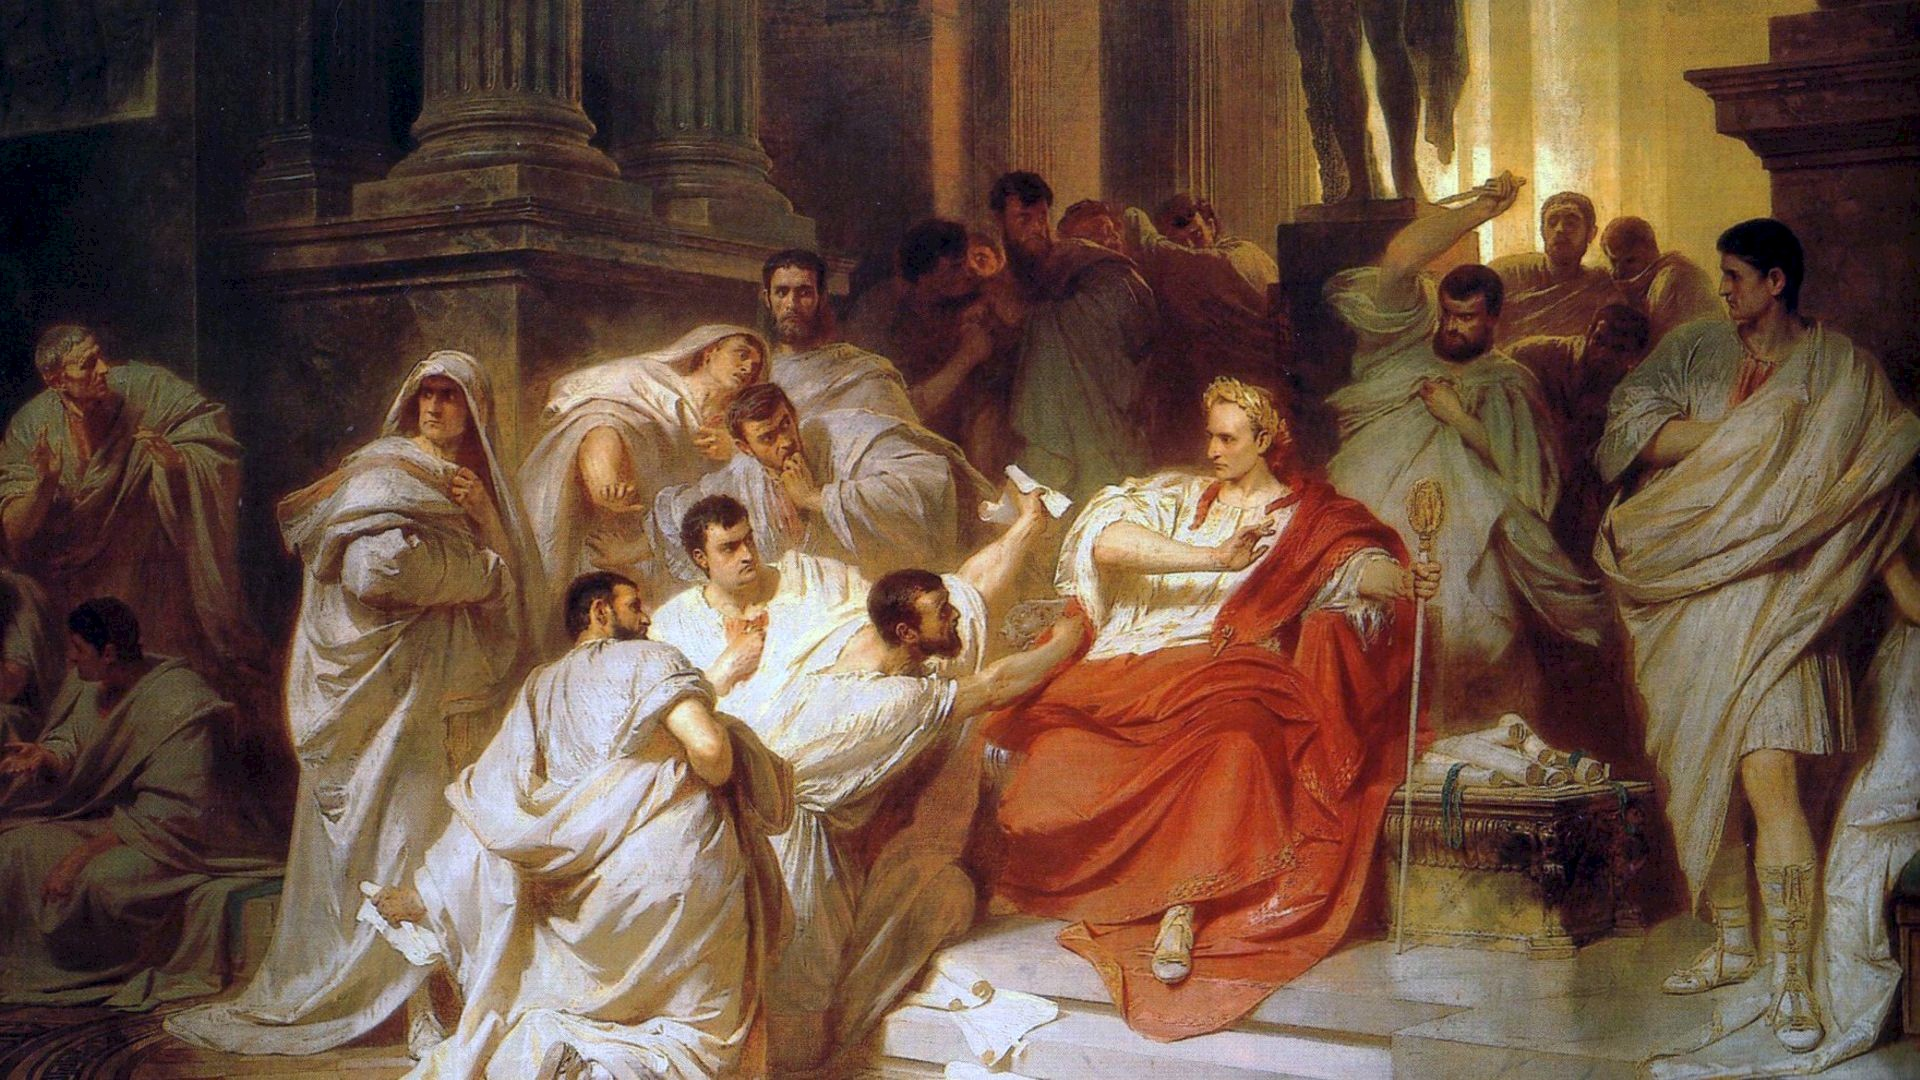 Was Julius Caesar the First Emperor of Rome?